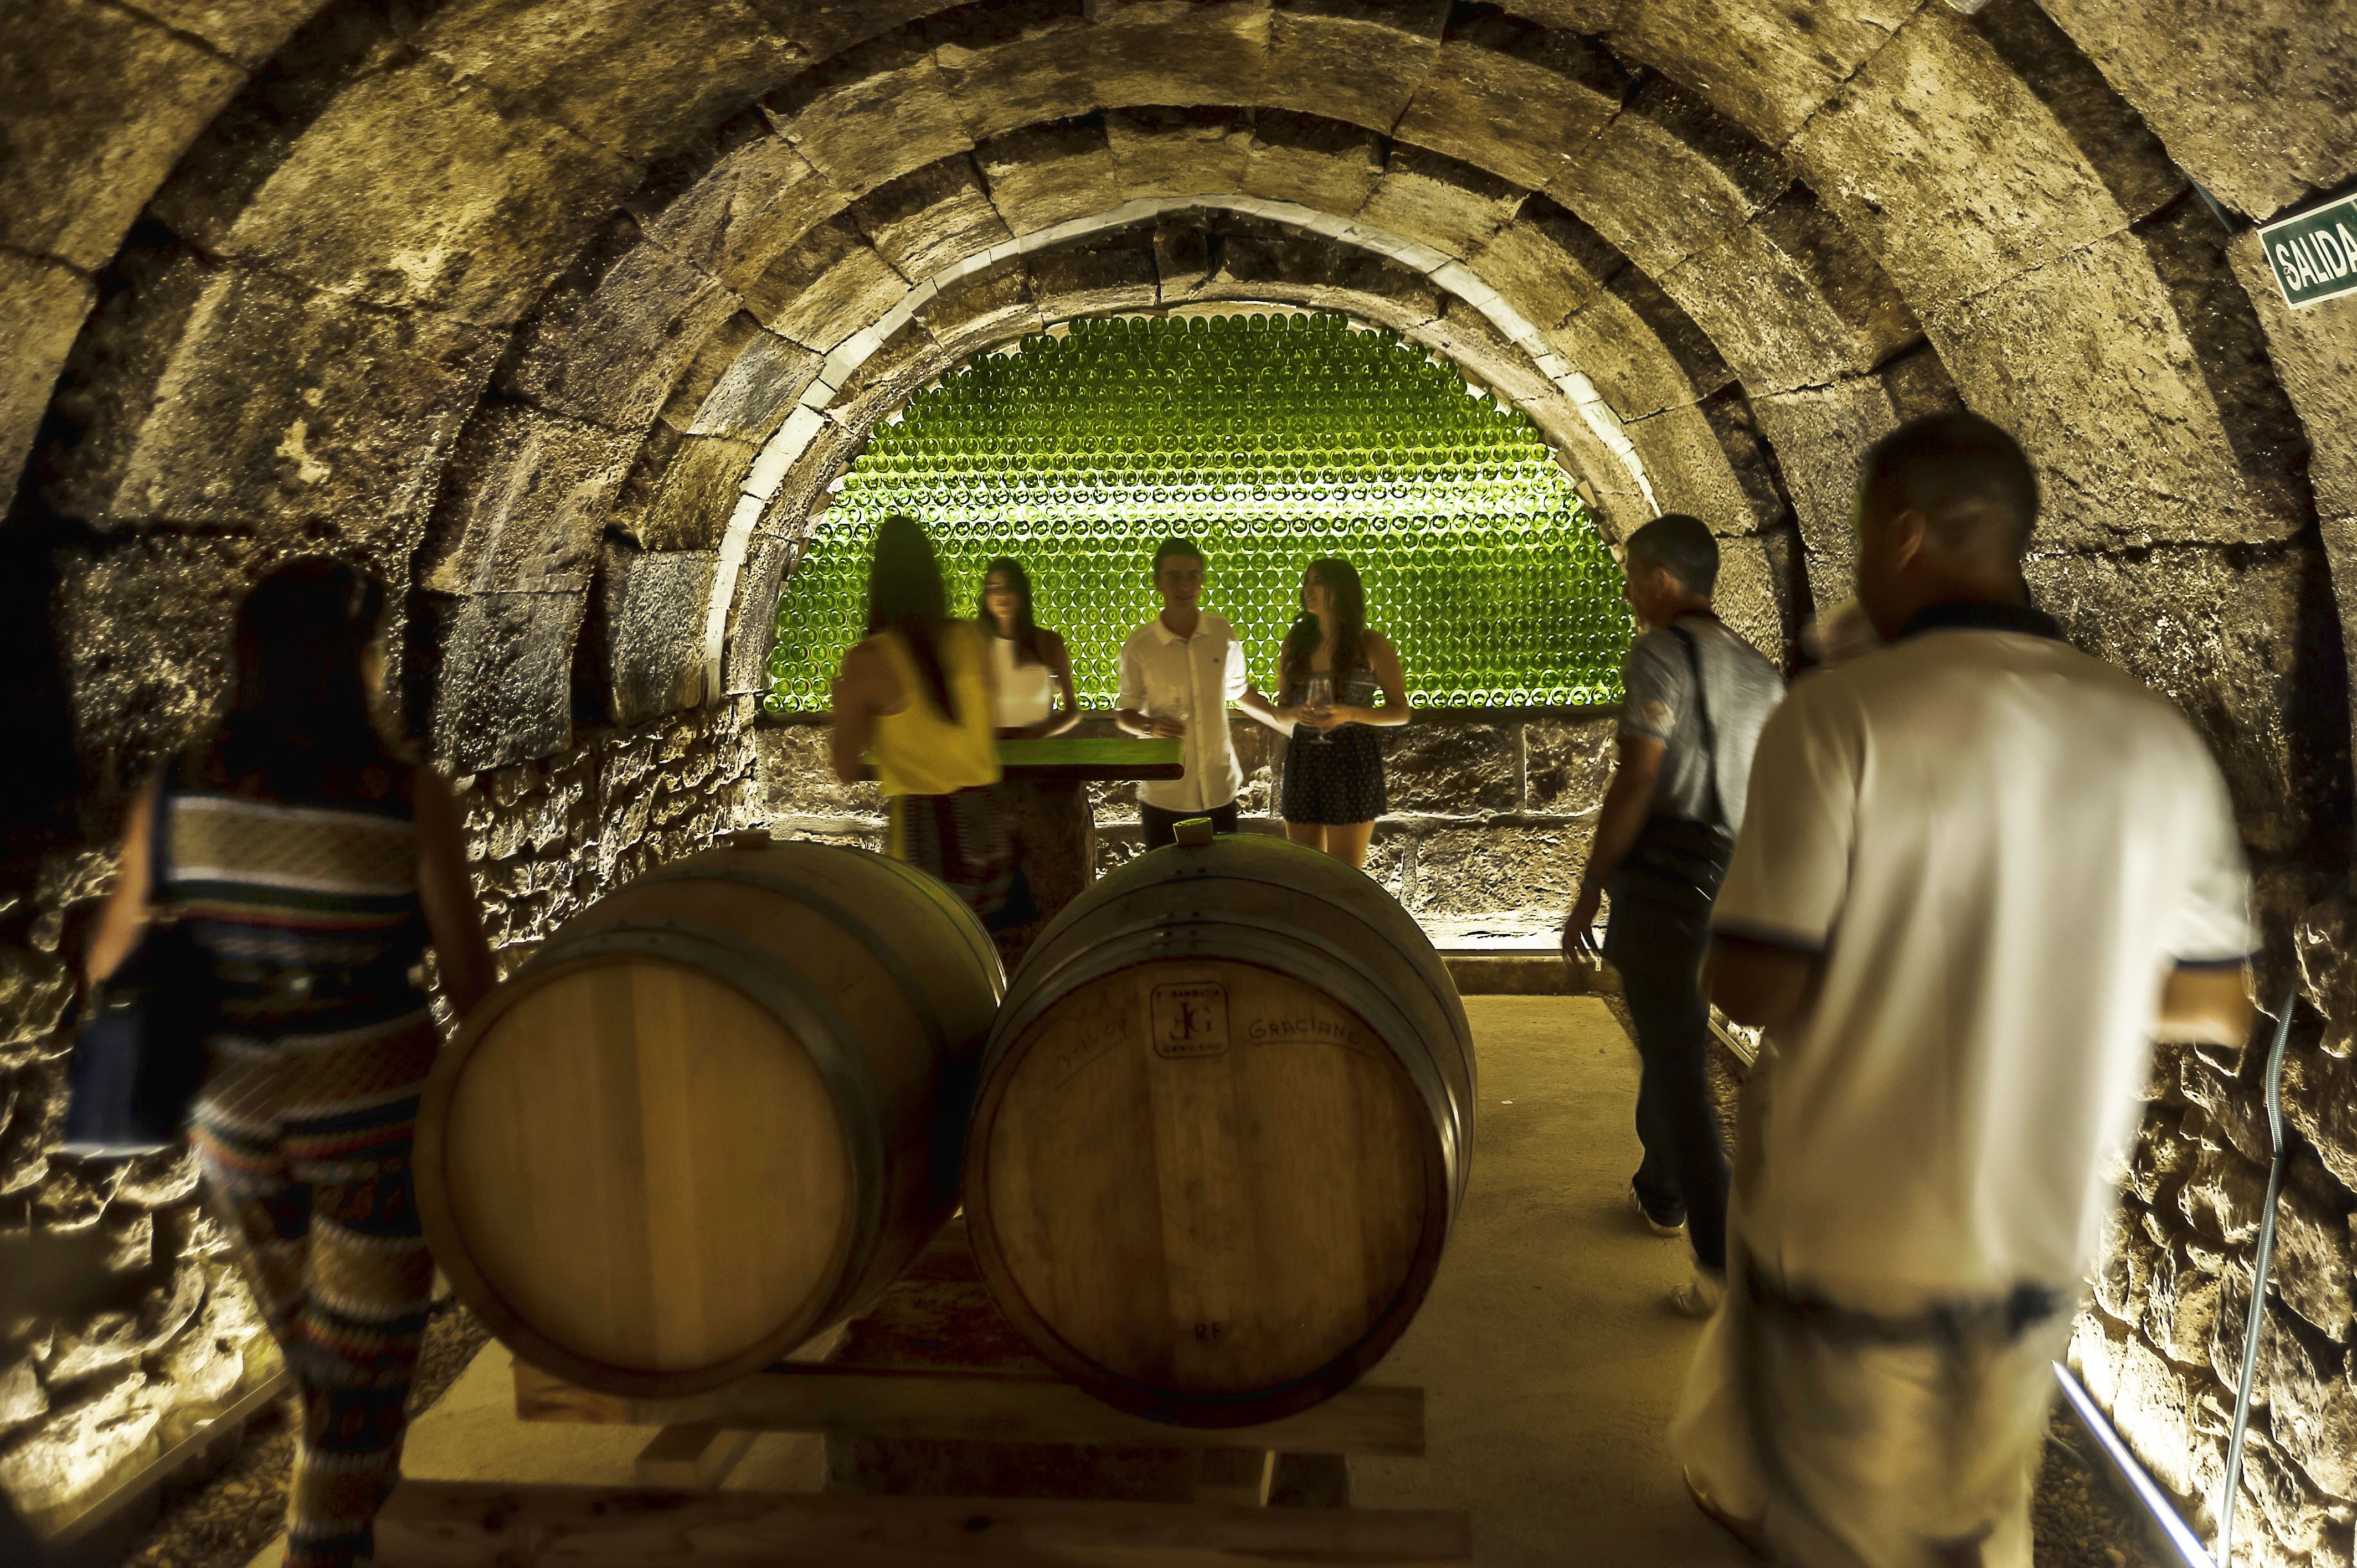 VISIT OUR WINE CELLARS